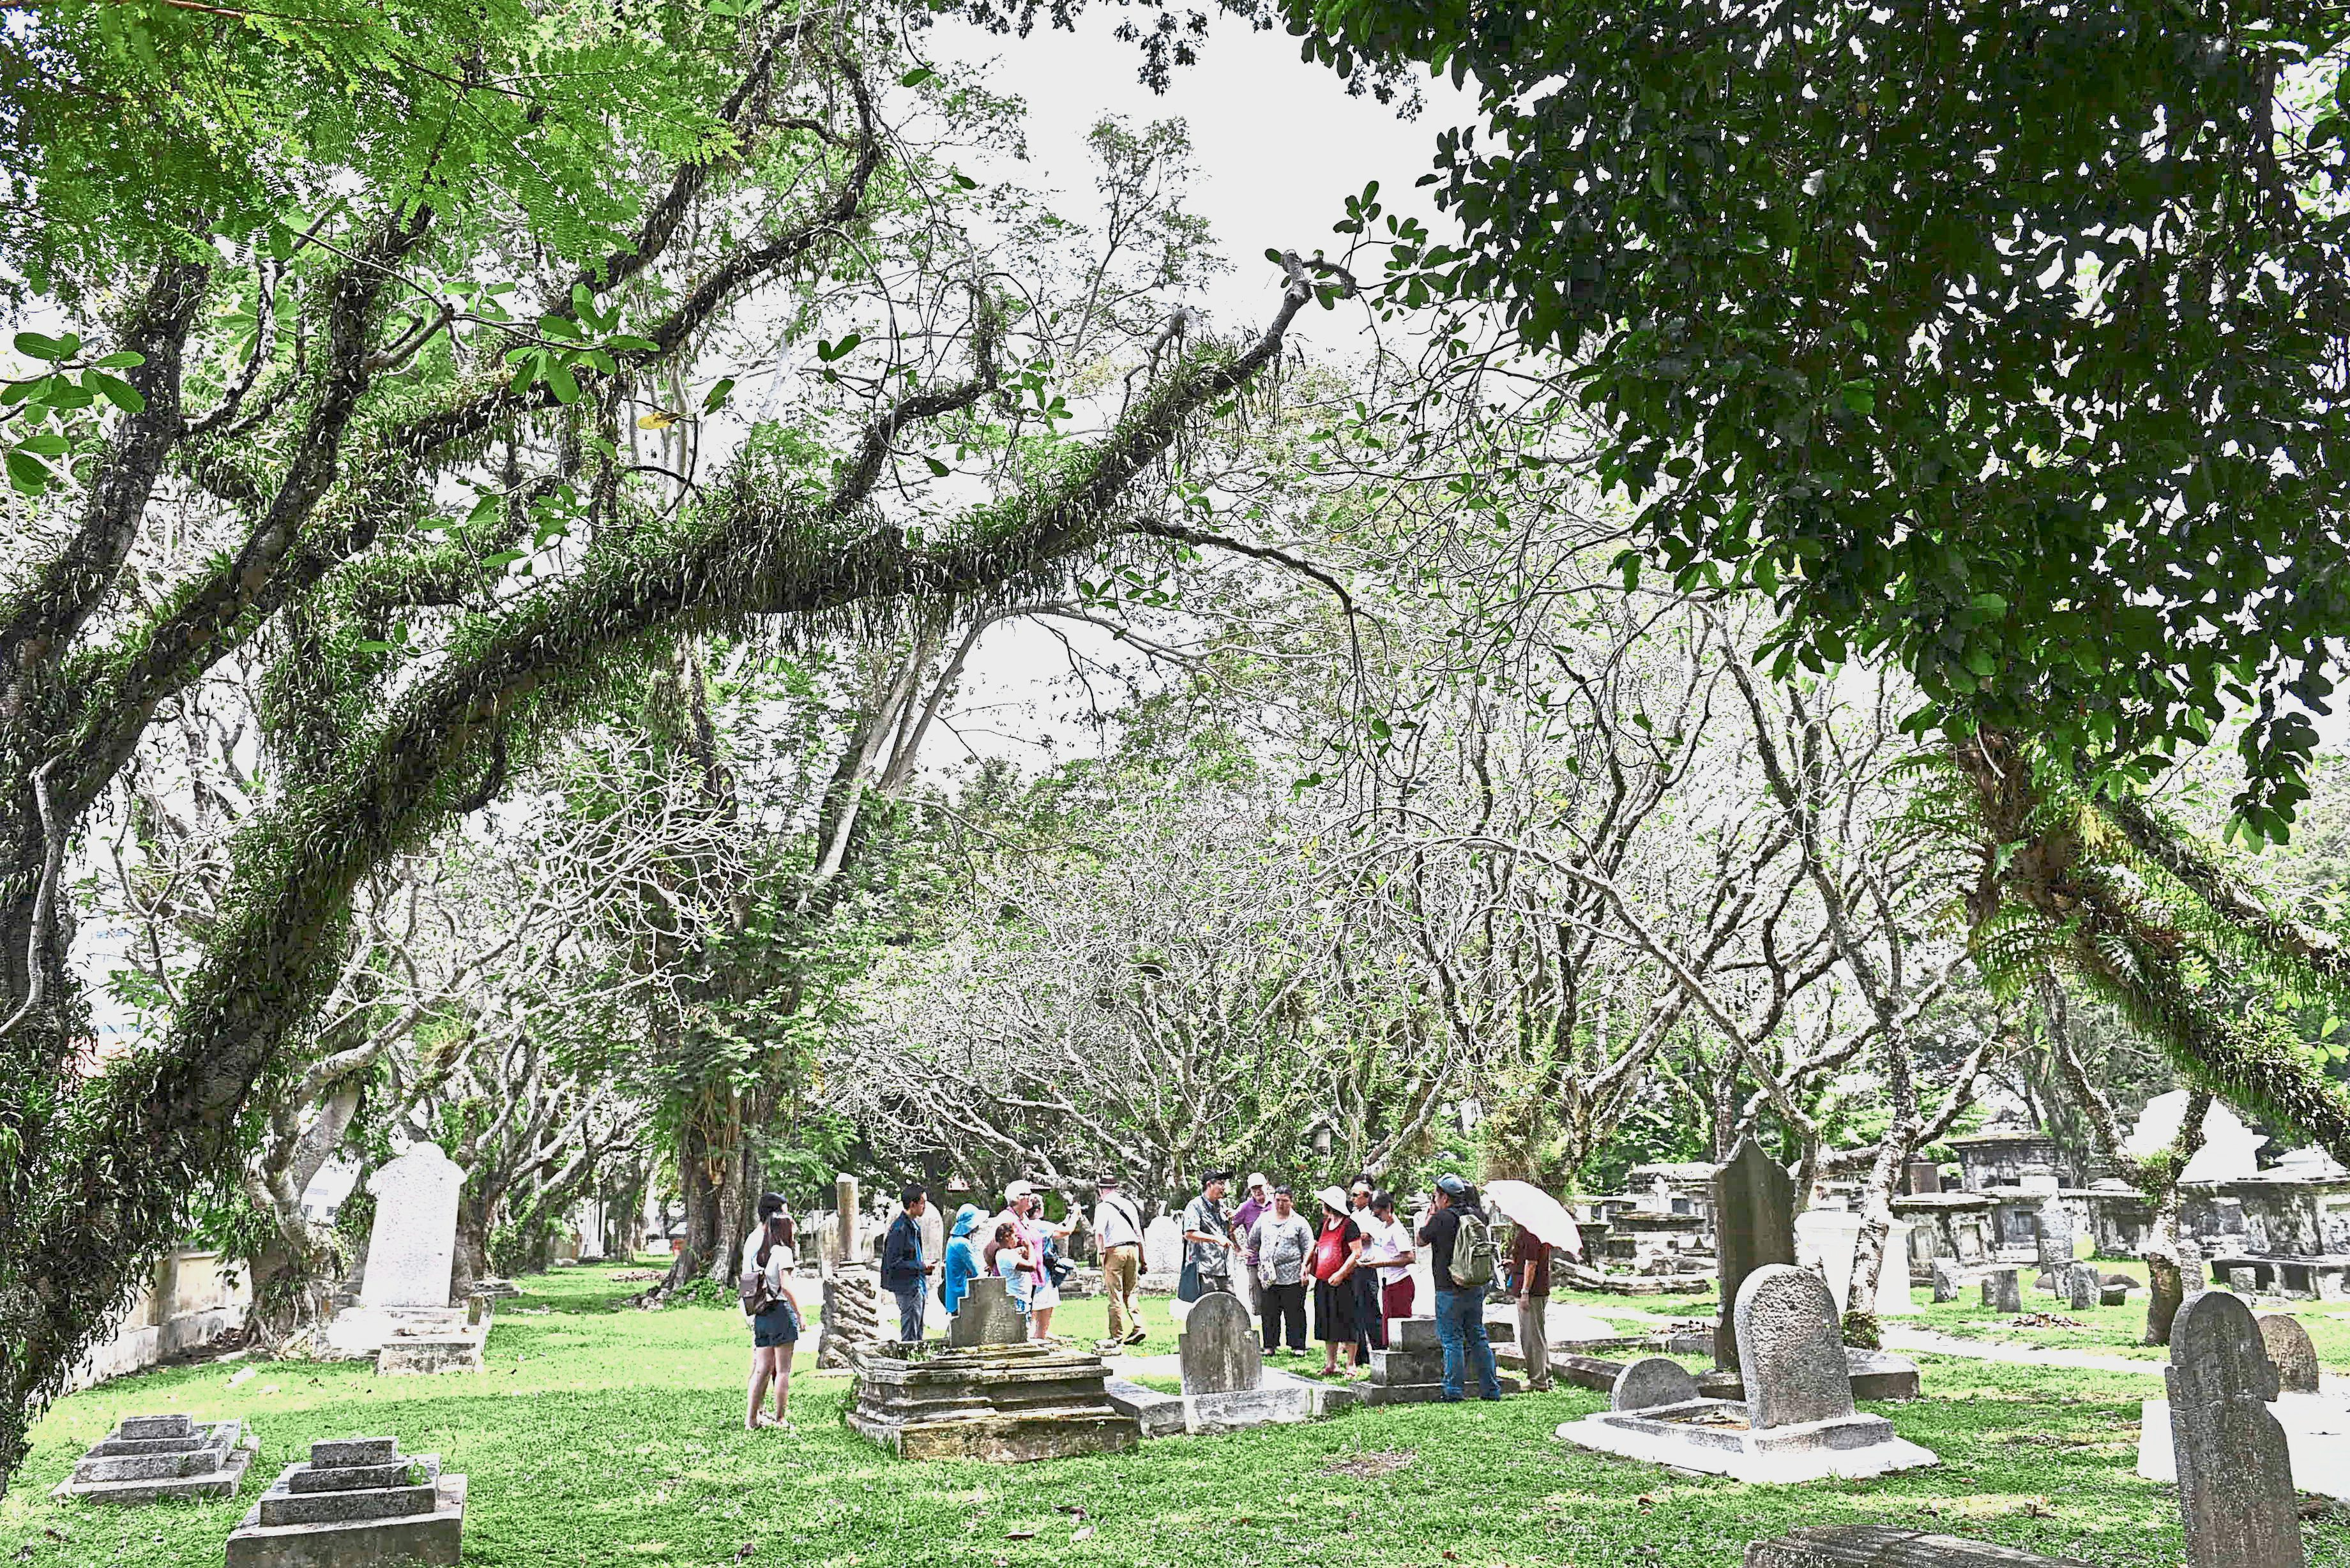 Visitors listening to stories about the illustrious personalities buried at the Protestant Cemetery in Jalan Sultan Ahmad Shah, George Town. — Photos: GARY CHEN/The Star